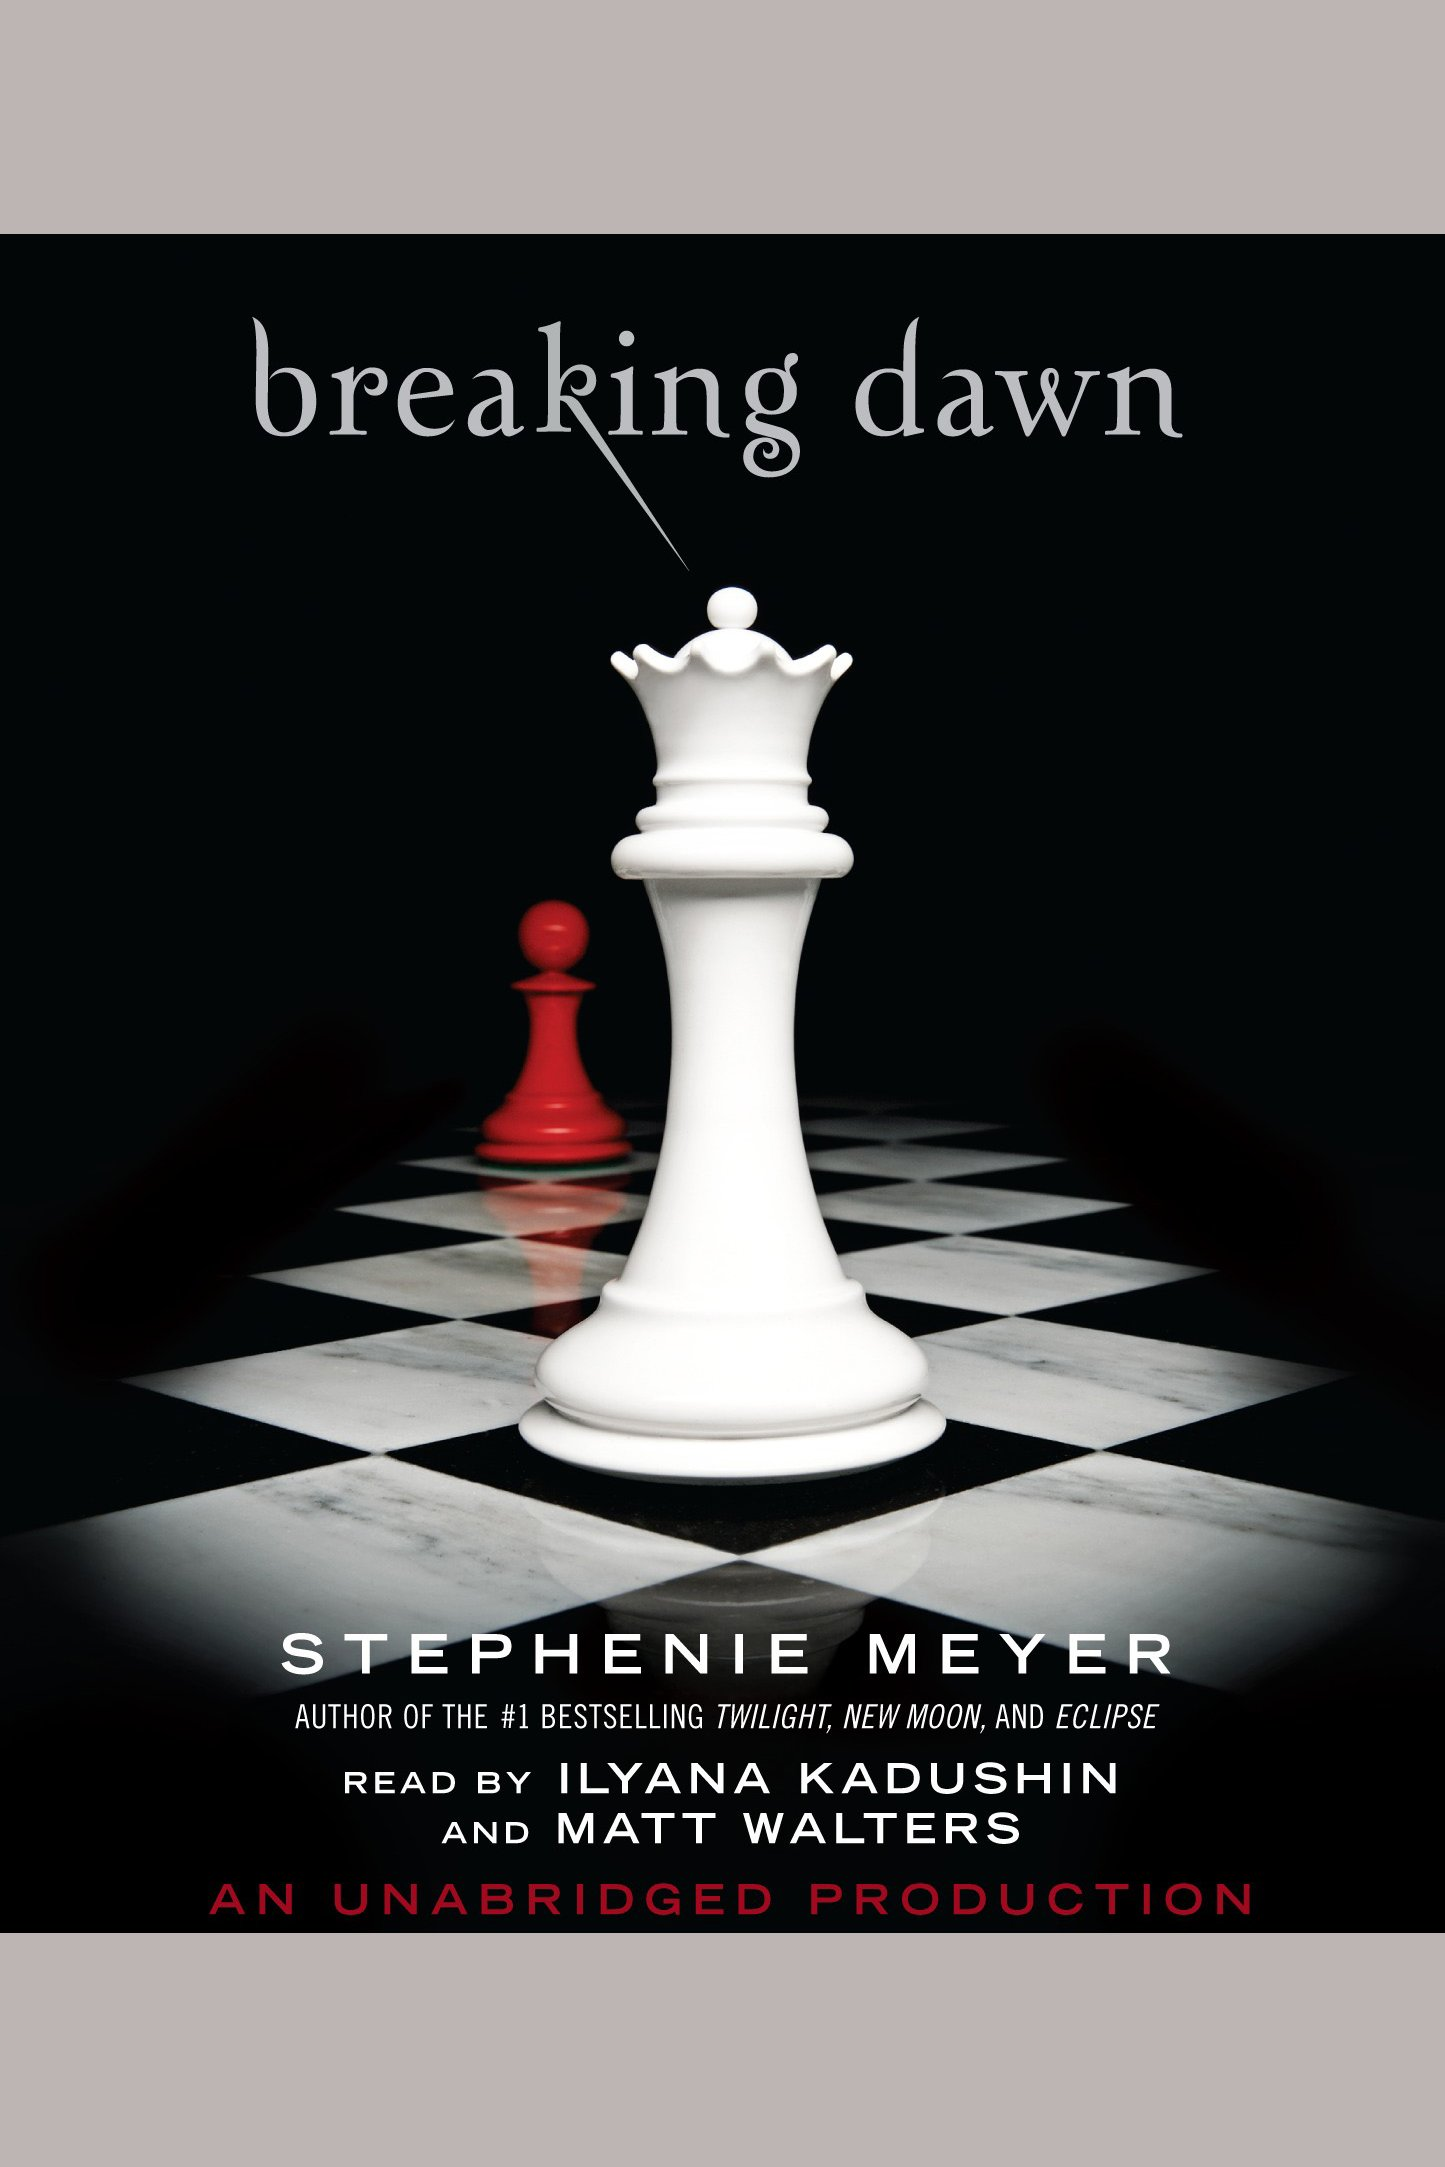 Breaking dawn cover image